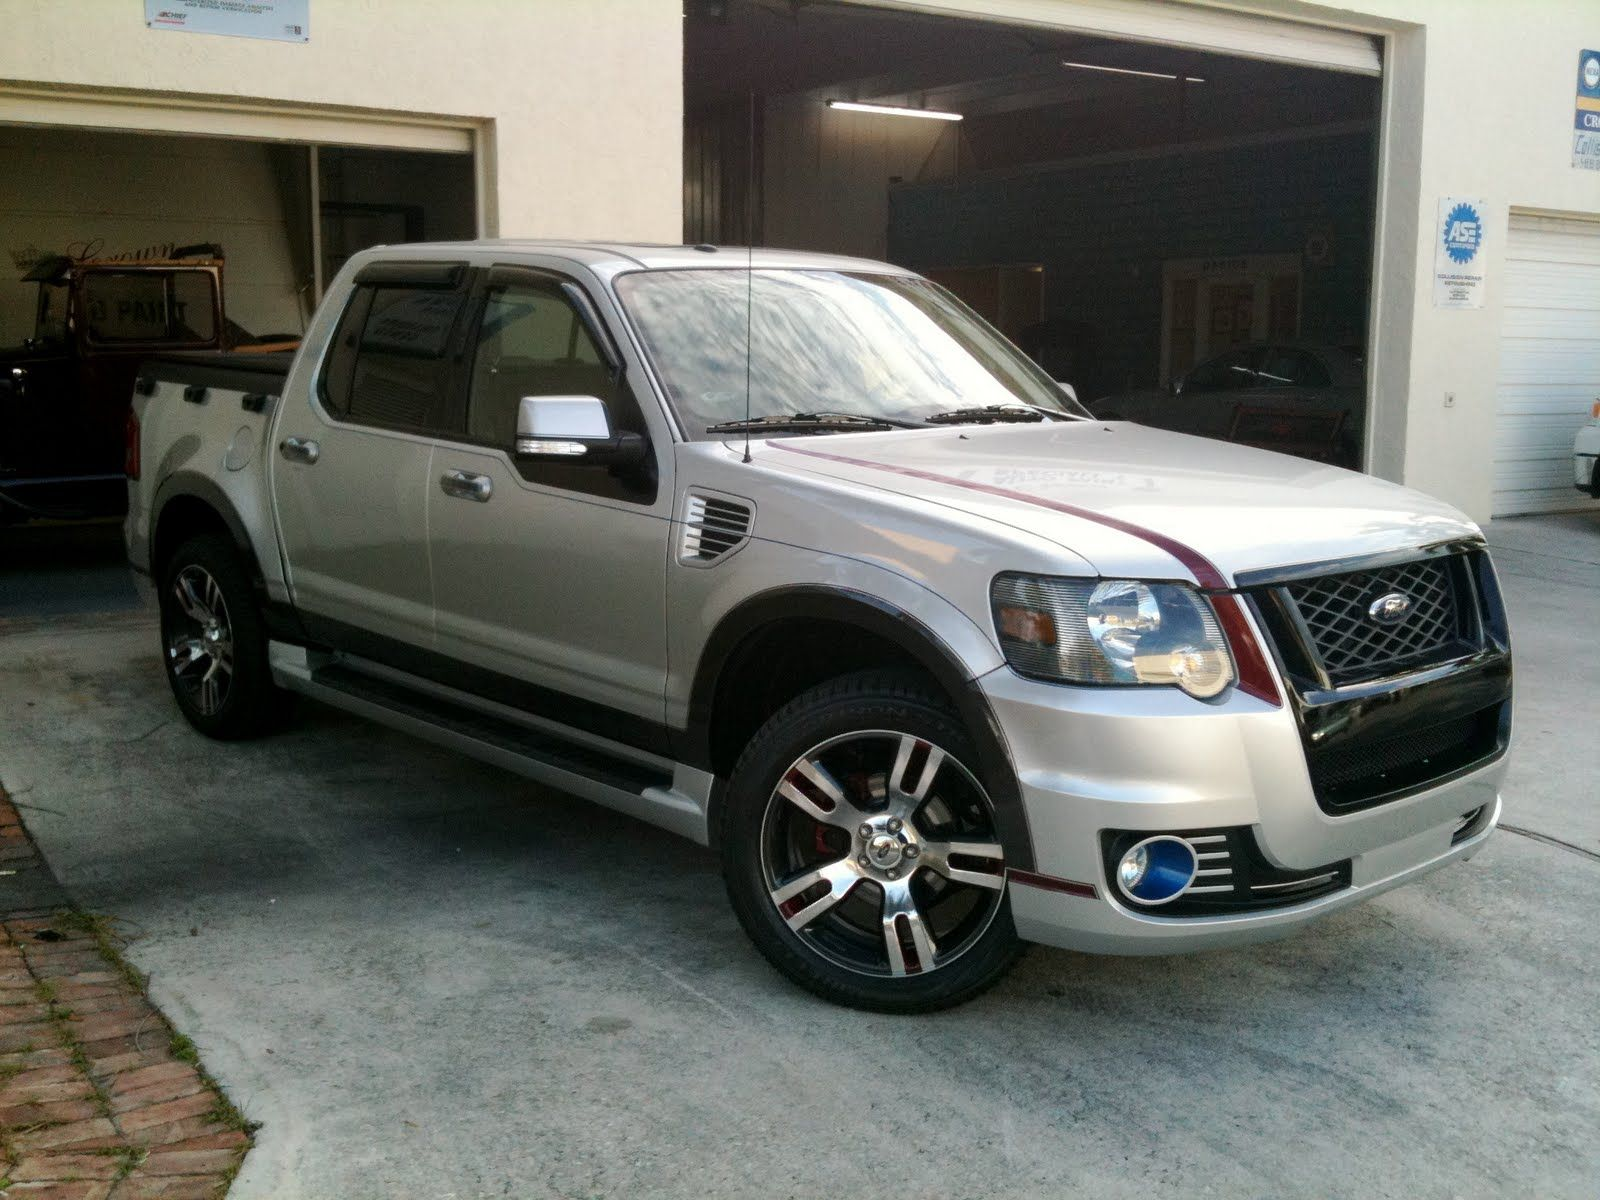 Explorer ford explorer custom suv tuning jeep truckford explorer4x4super carsporthtml